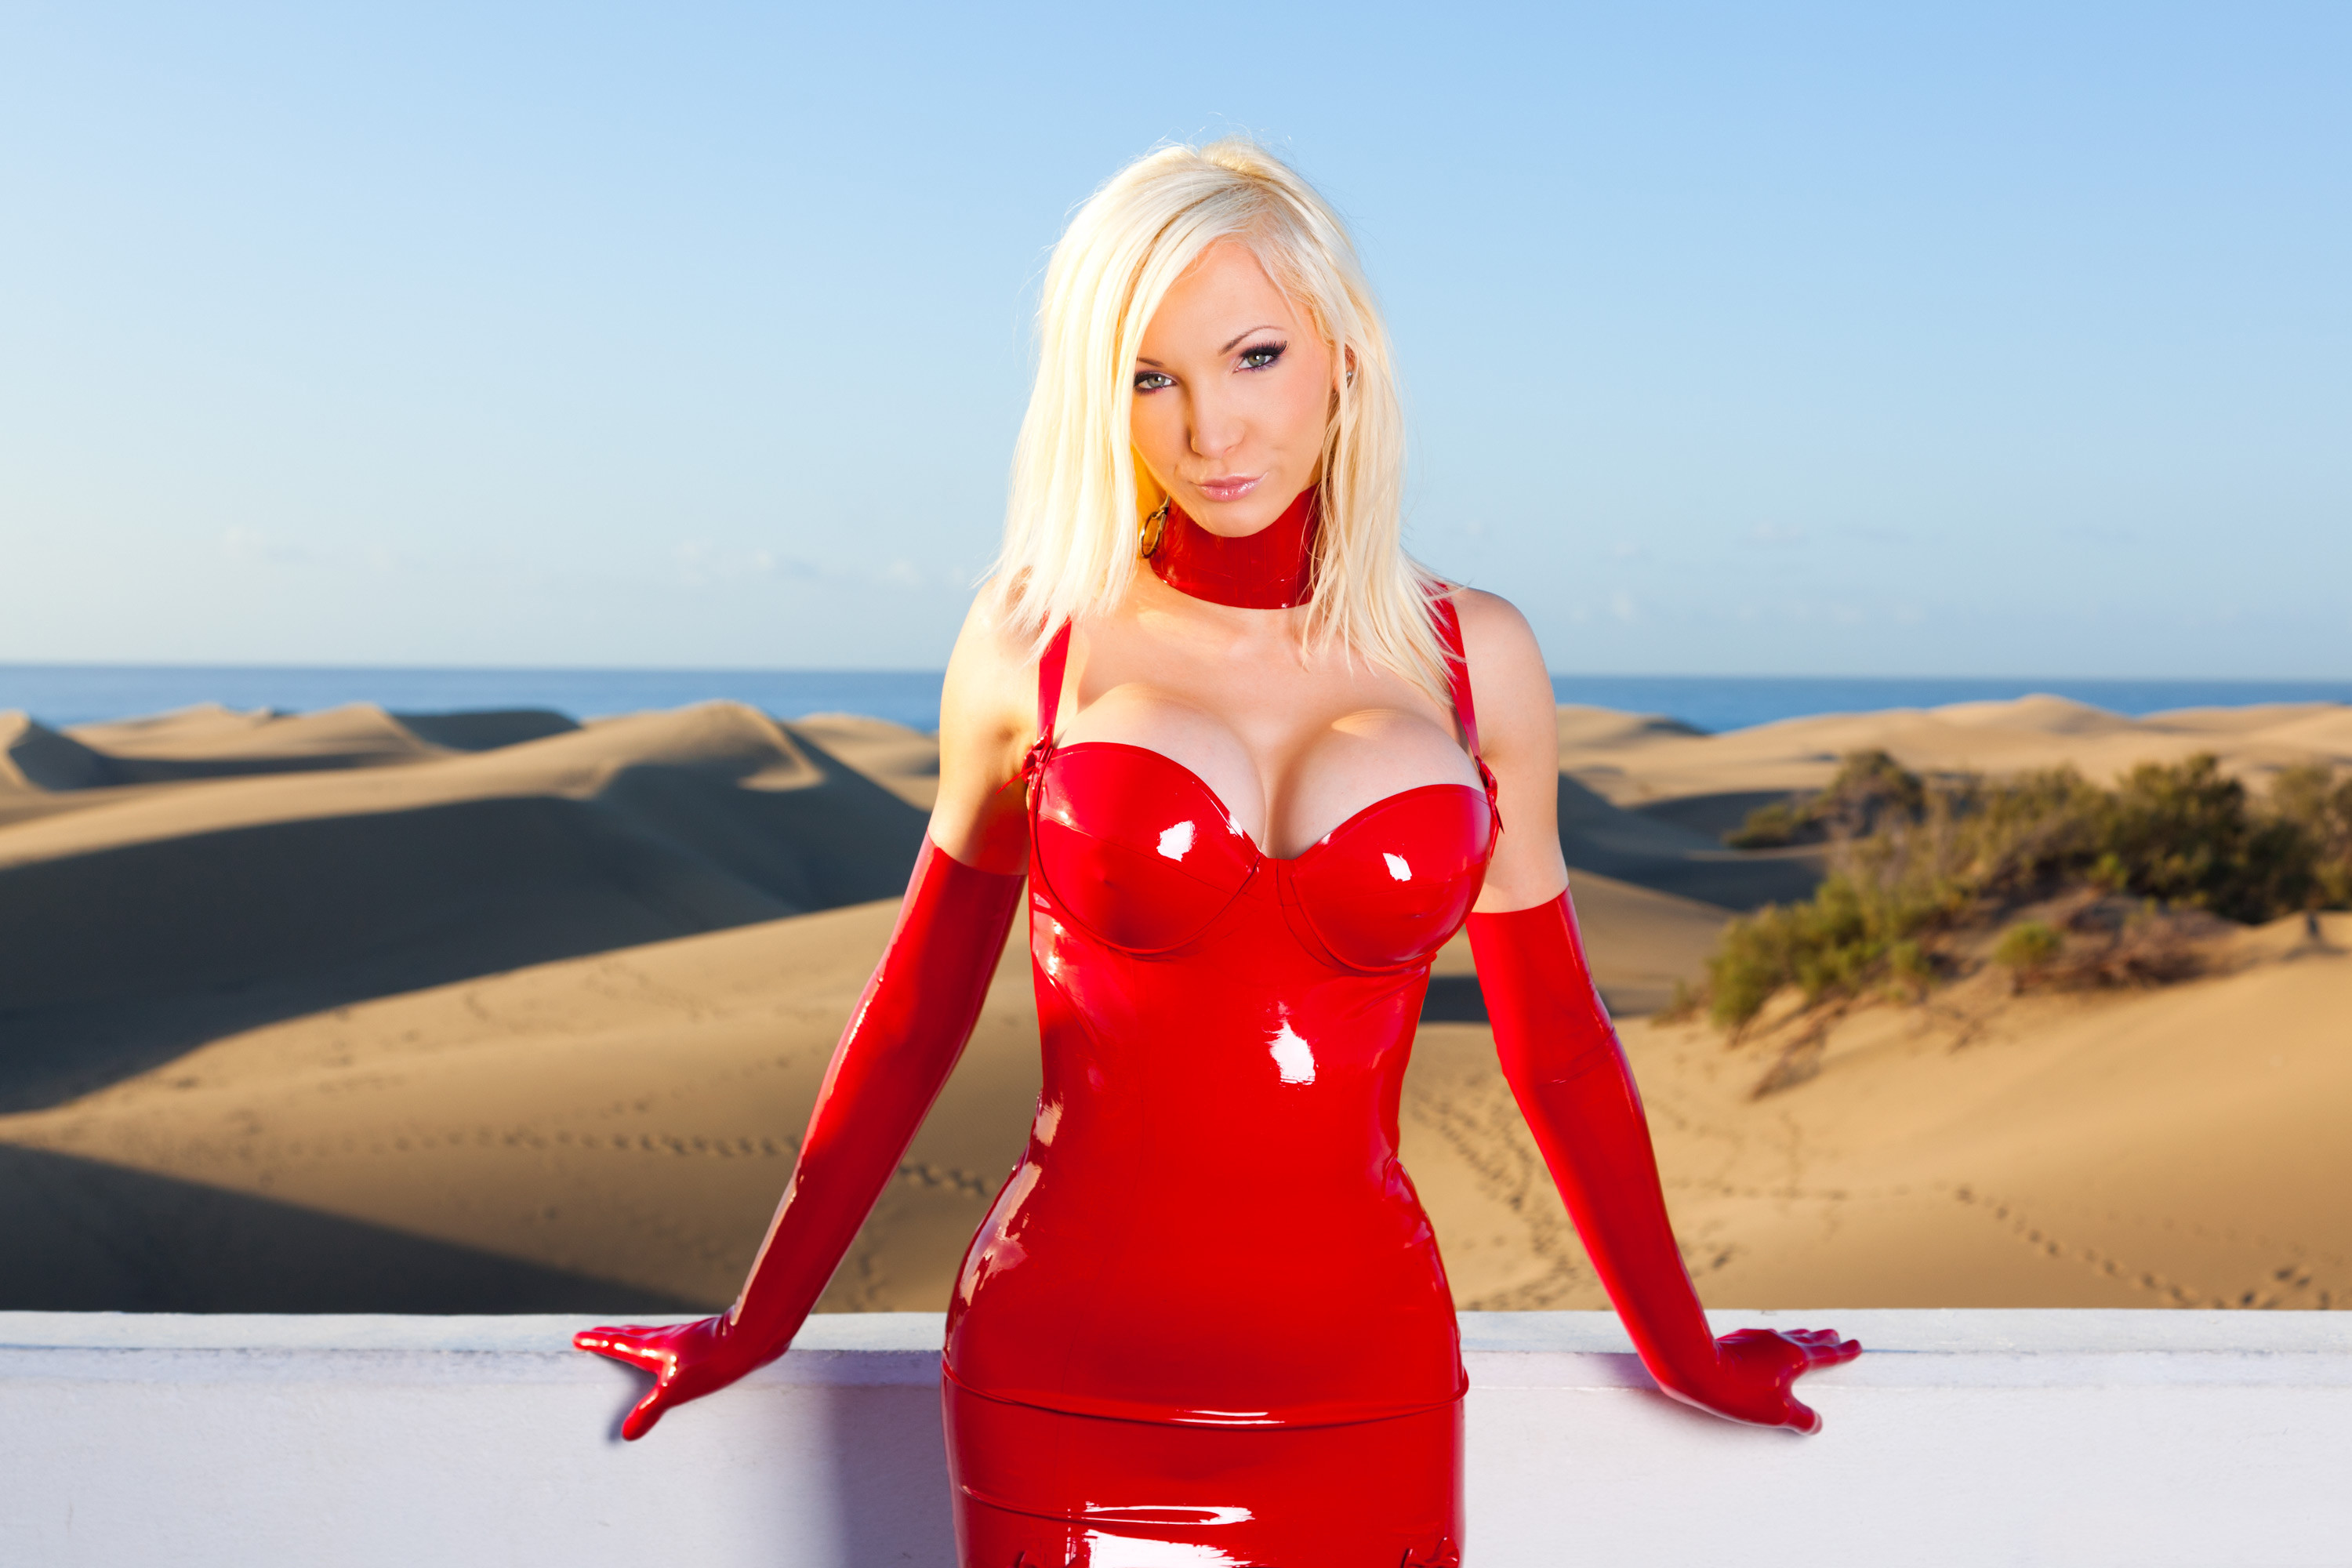 susan wayland sexy blonde red latex dress wallpaper 3000x2000